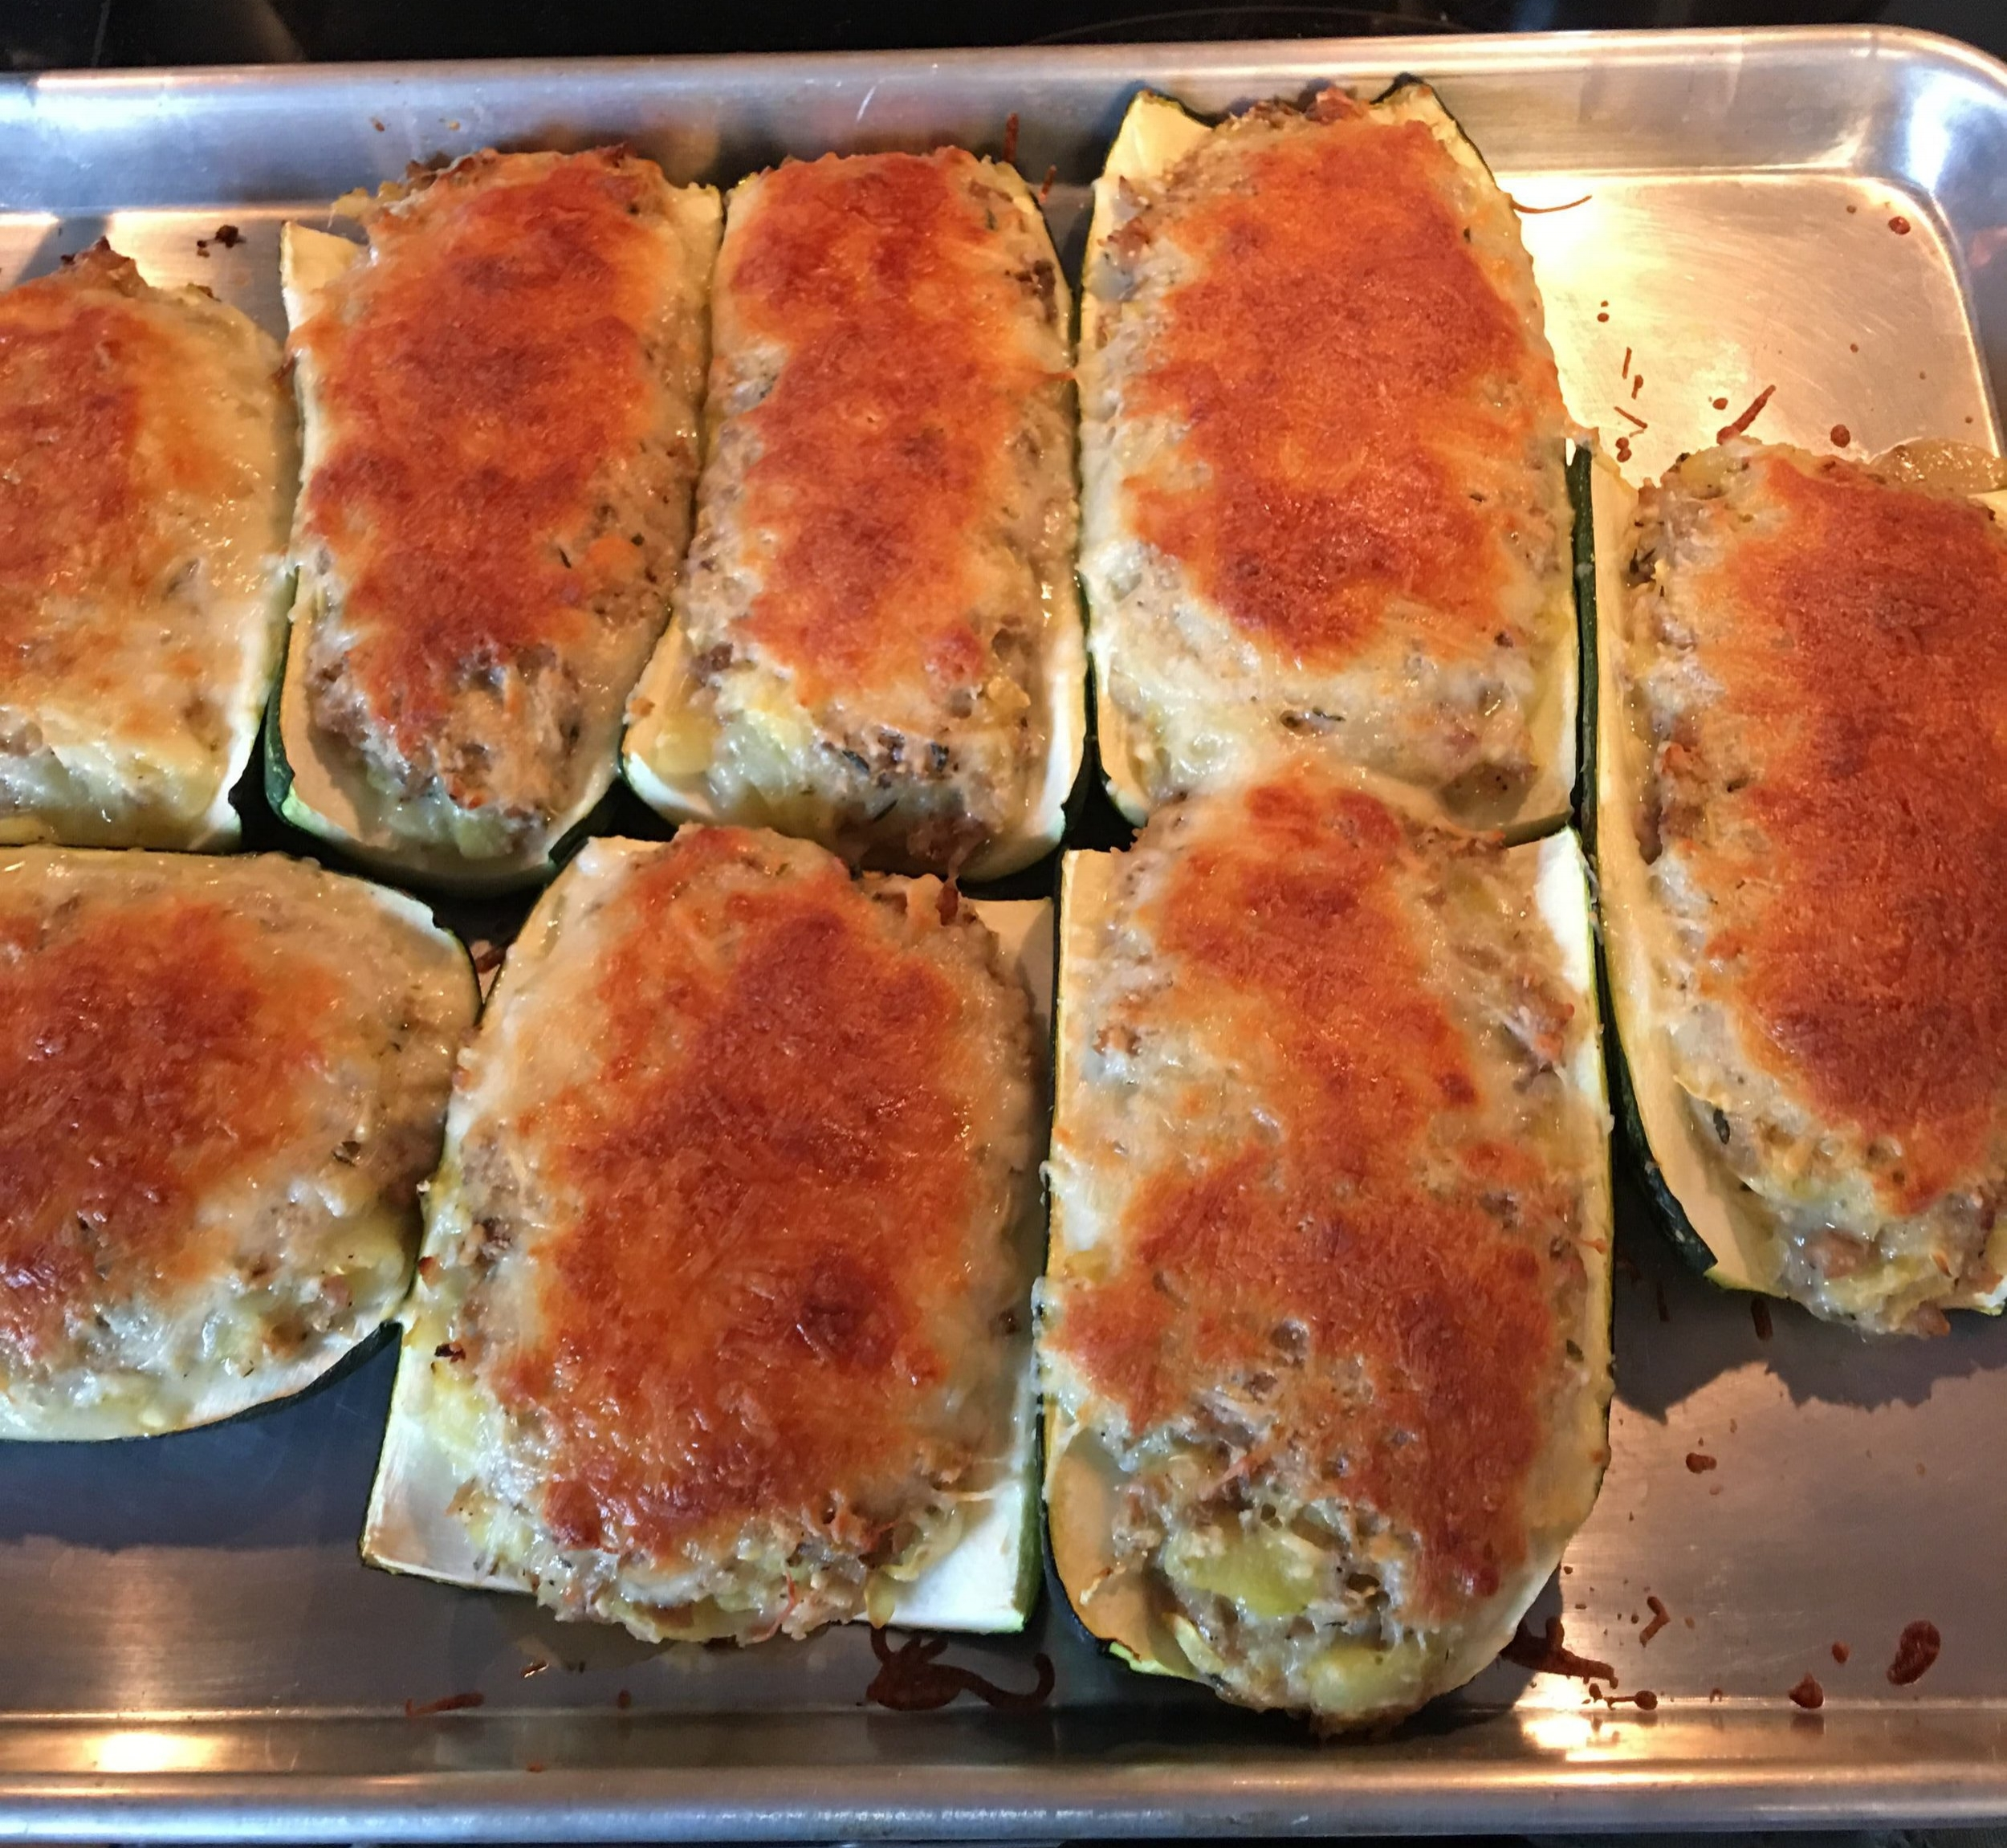 The final product. A clean and healthy version of stuffed zucchini. Try this healthy recipe today!